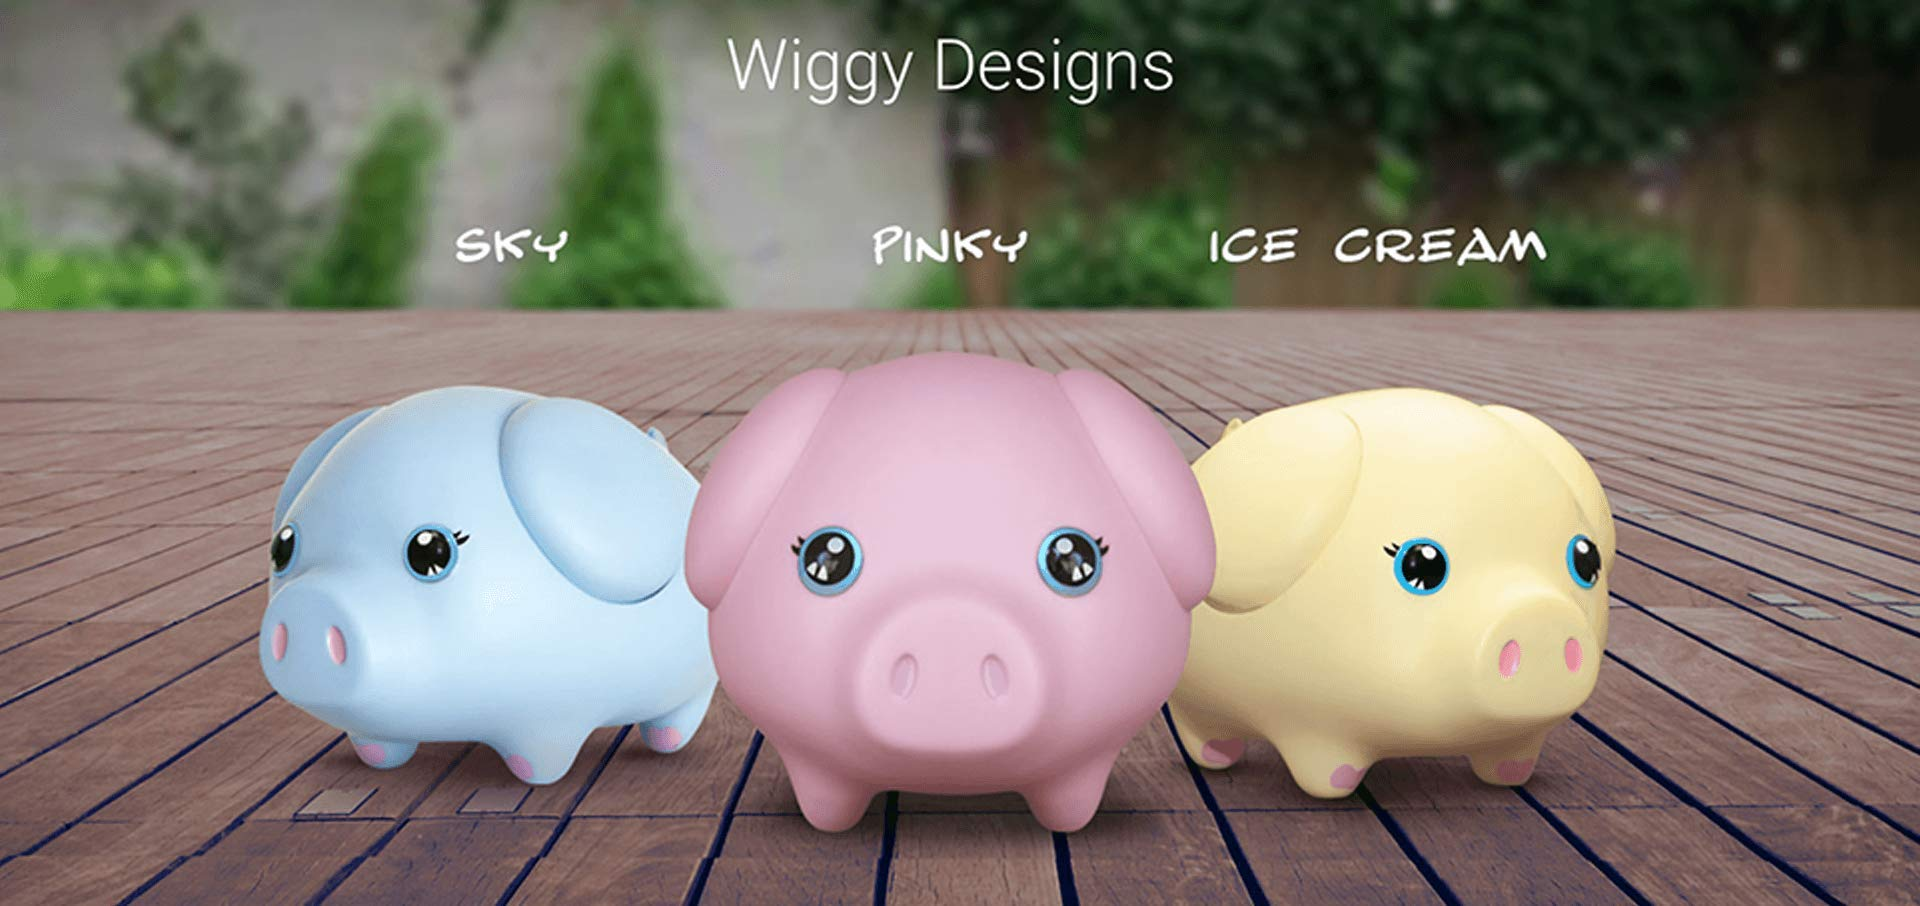 Wiggy Piggy Bank (Pink): Smart Speaking Piggy Bank and Task Tracker by Wiggy